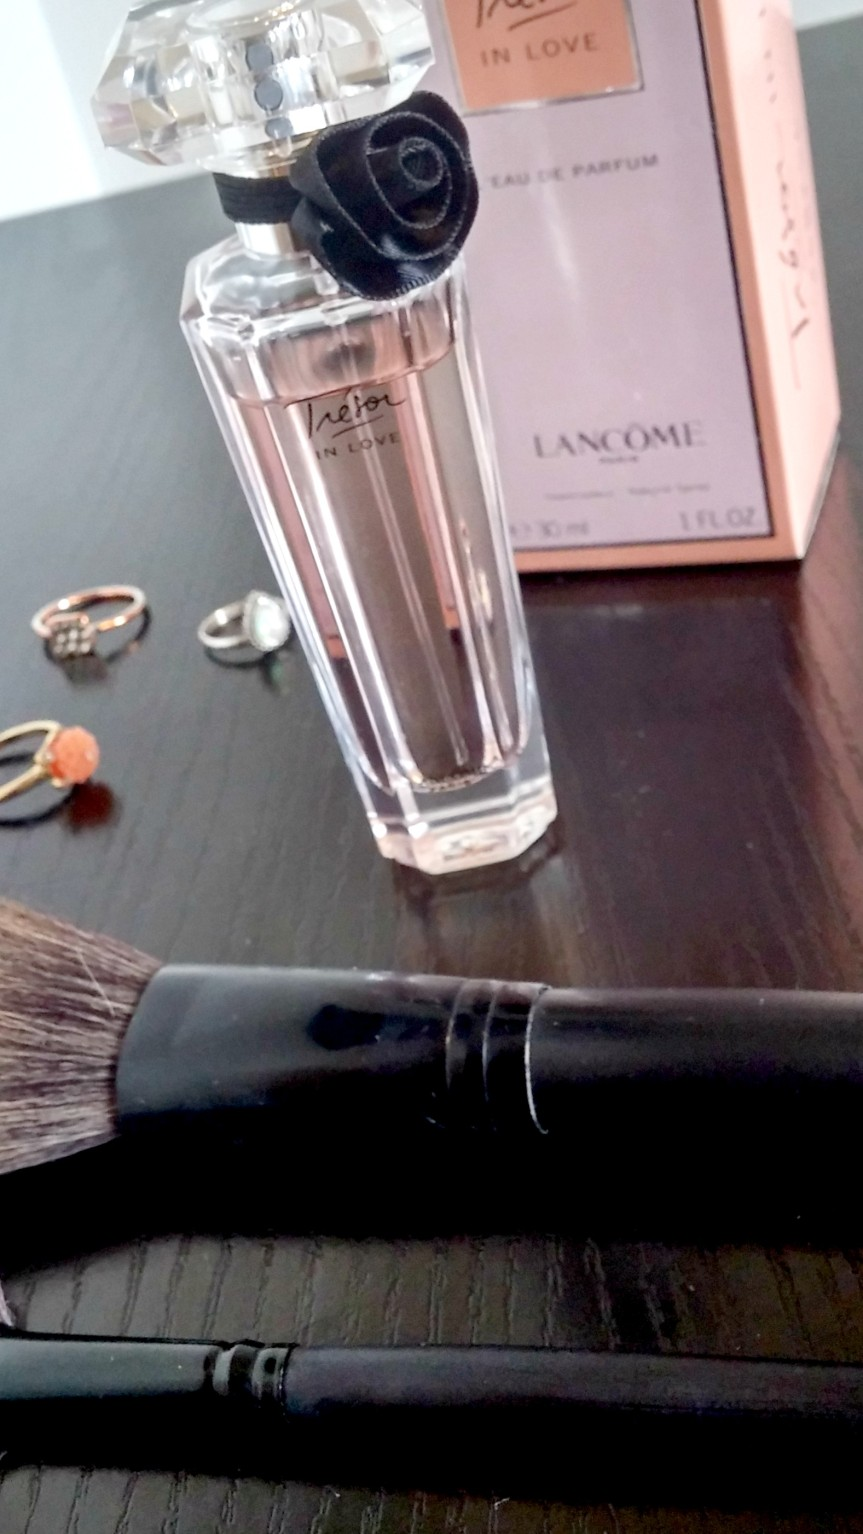 Beauty | Trésor in Love by Lancome